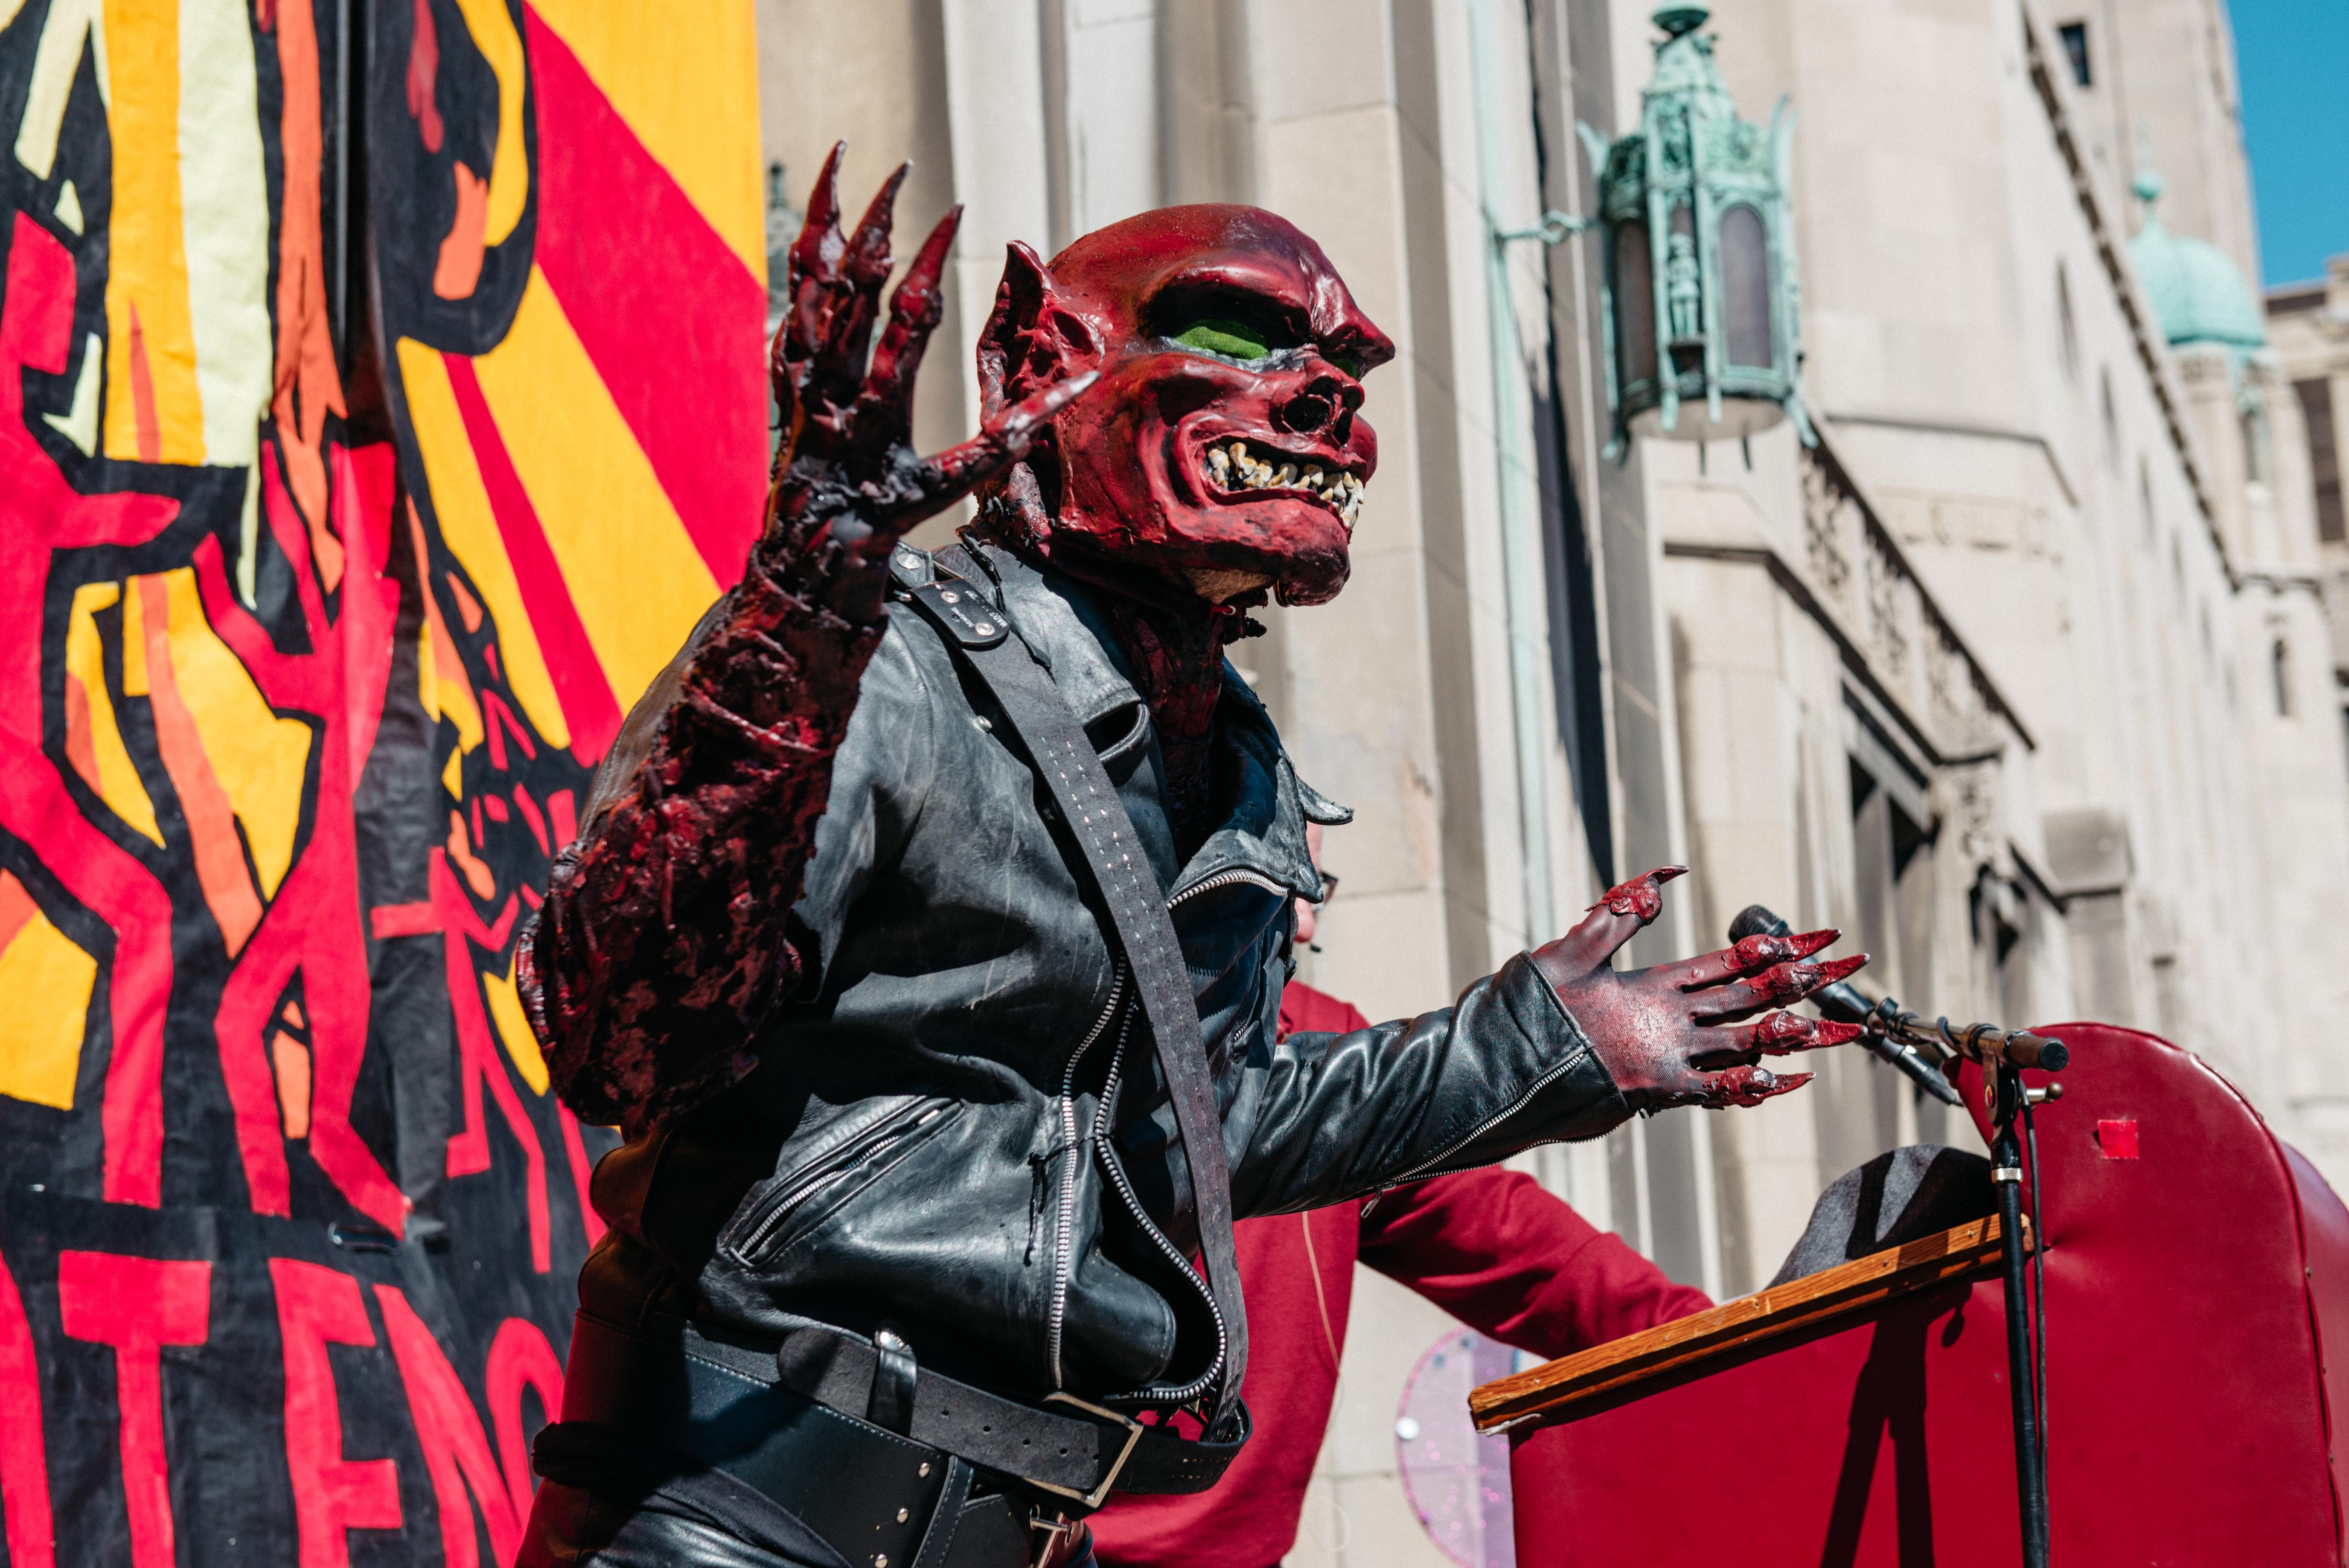 nain rouge will make his yearly detroit appearance on march 25 | the